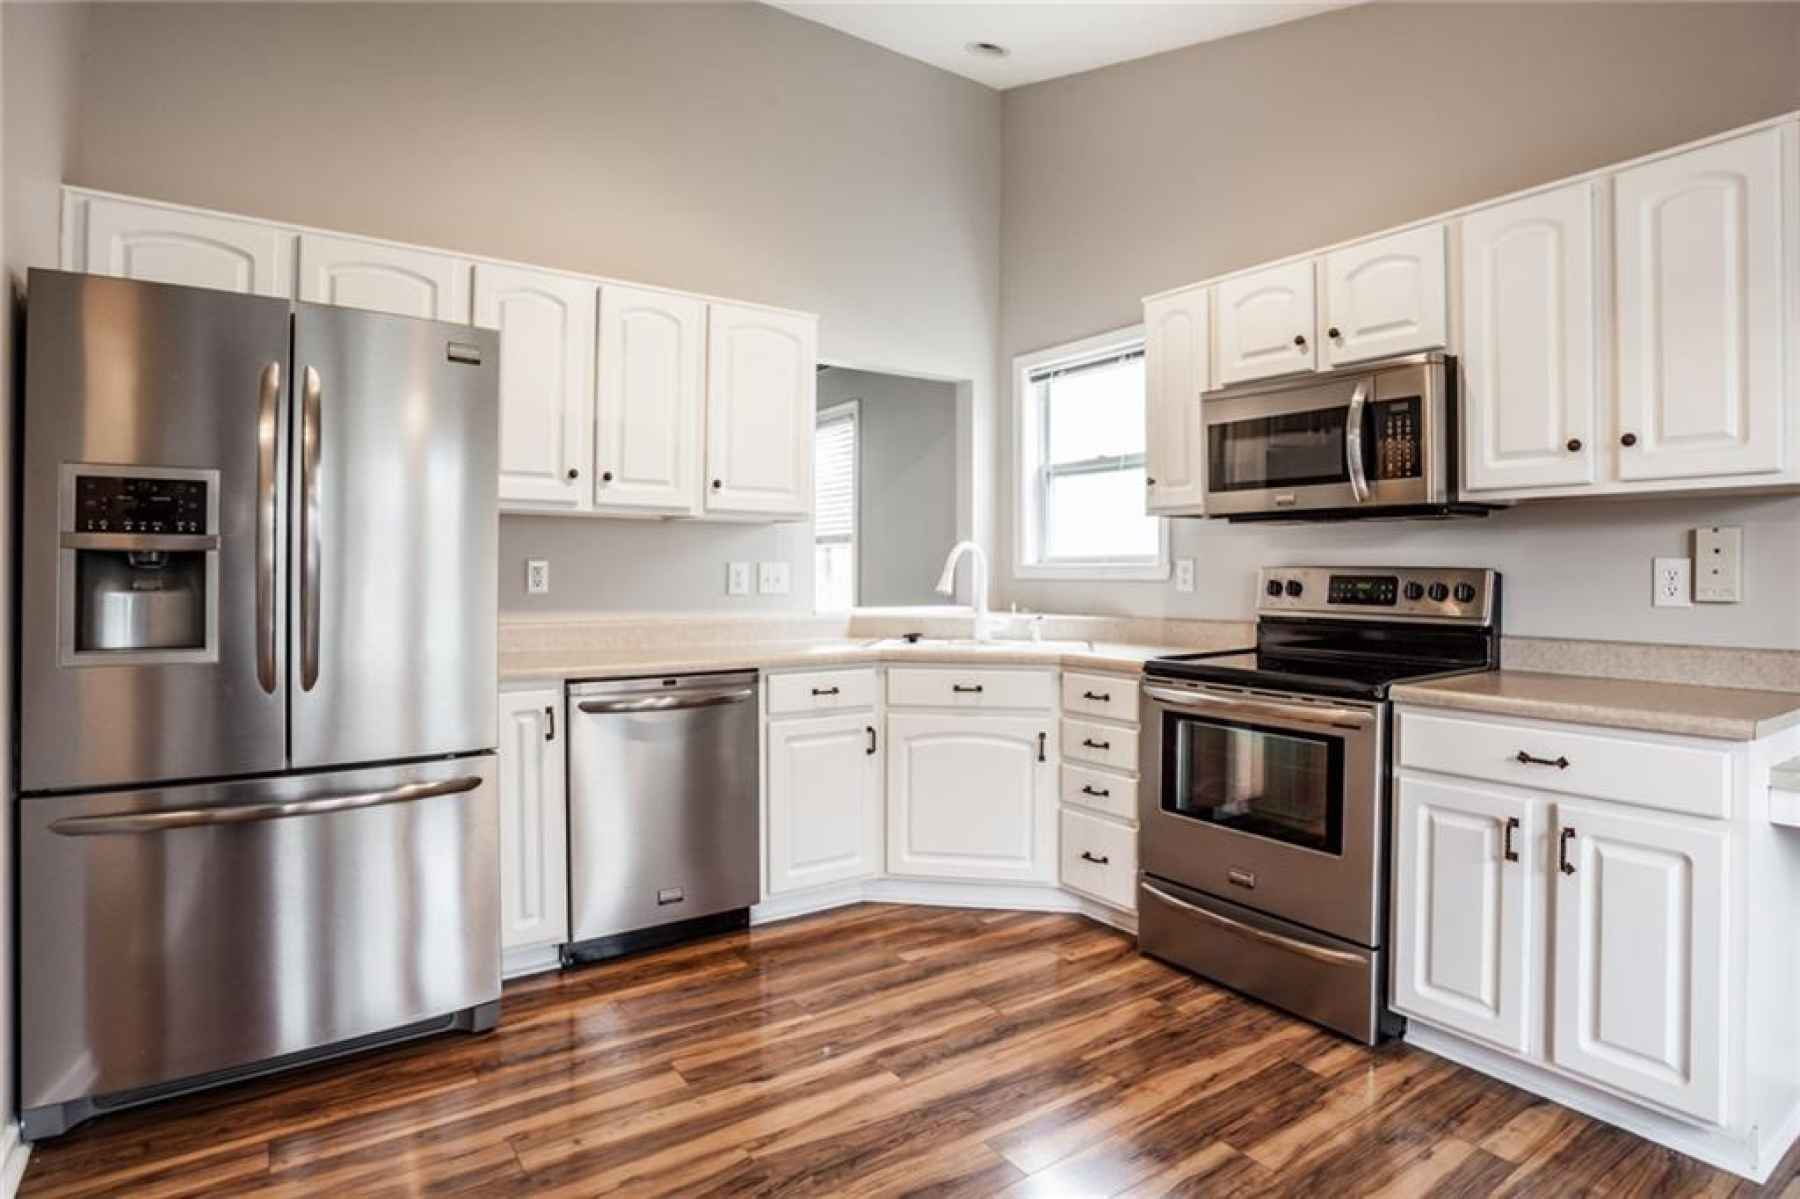 Stainless appliances stay!